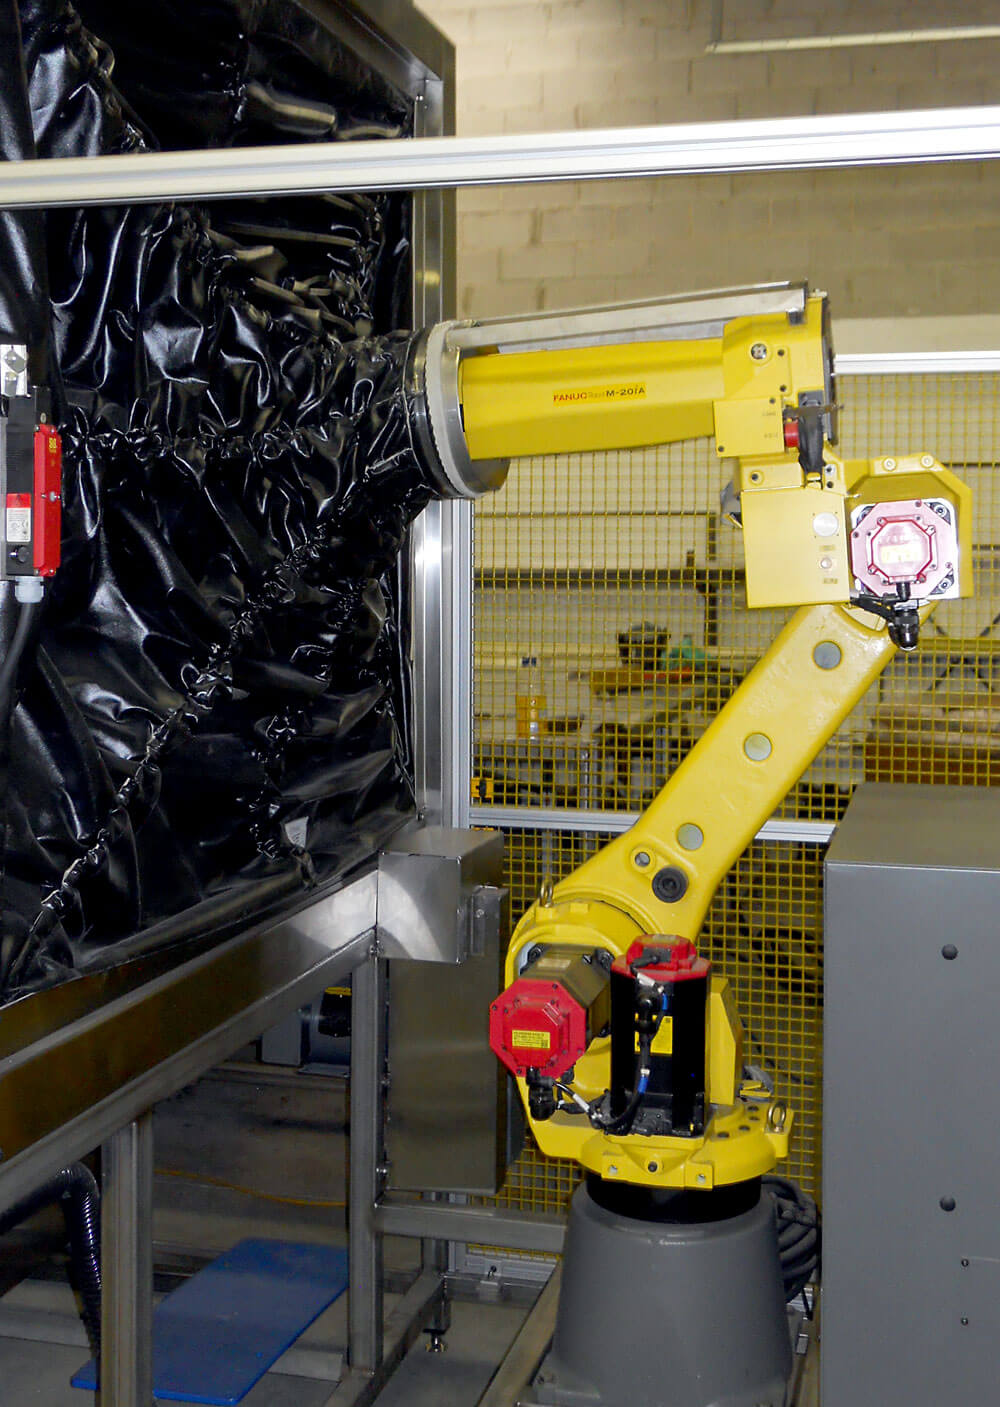 Six axis Fanuc Robot integrated with wet blasting system. Client: Pratt.